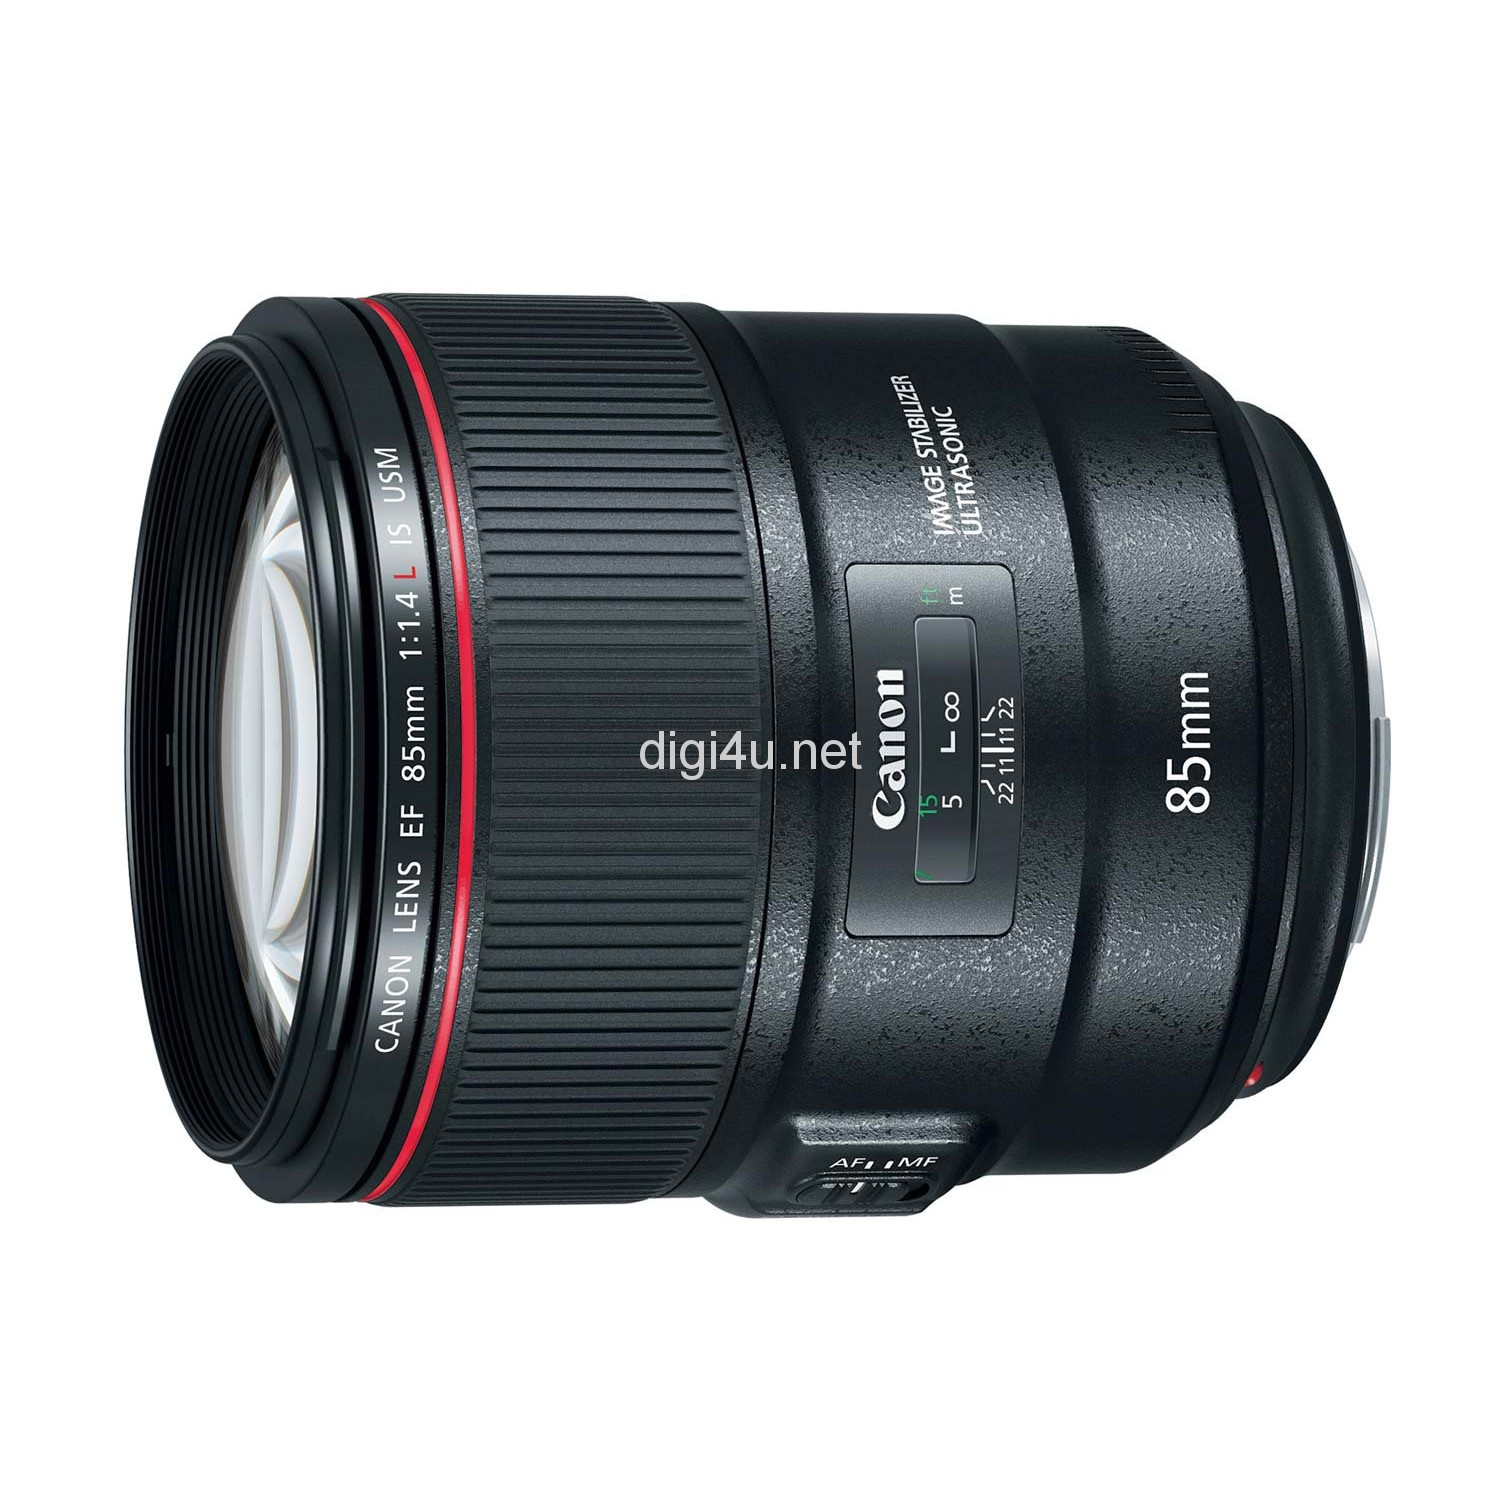 Canon lens 85mm f/1.4L IS USM (LBM)